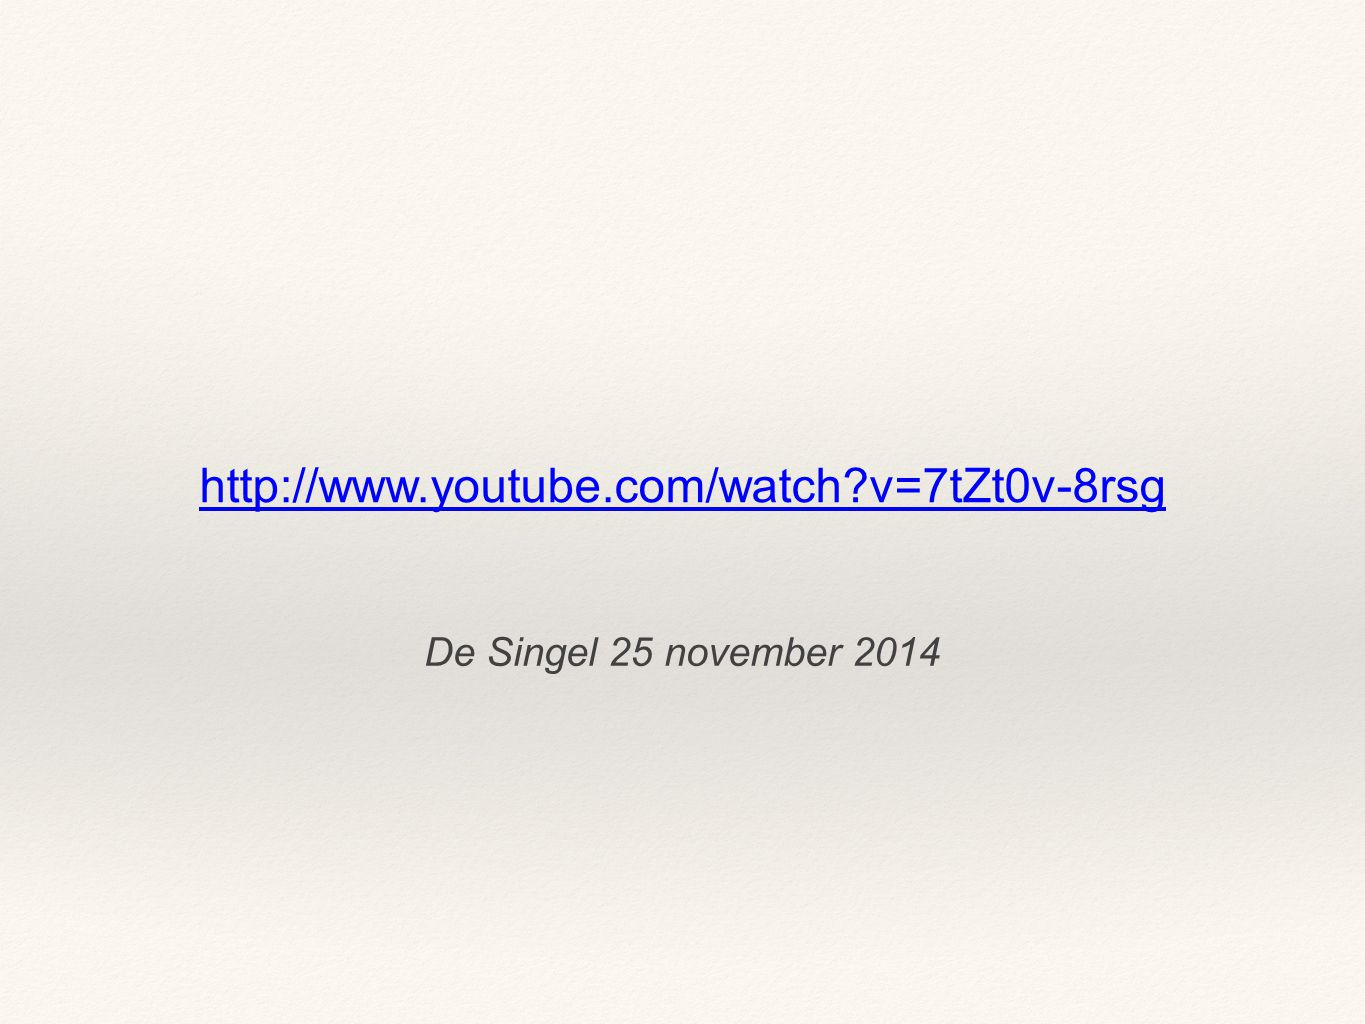 De Singel 25 november 2014 http://www.youtube.com/watch?v=7tZt0v-8rsg